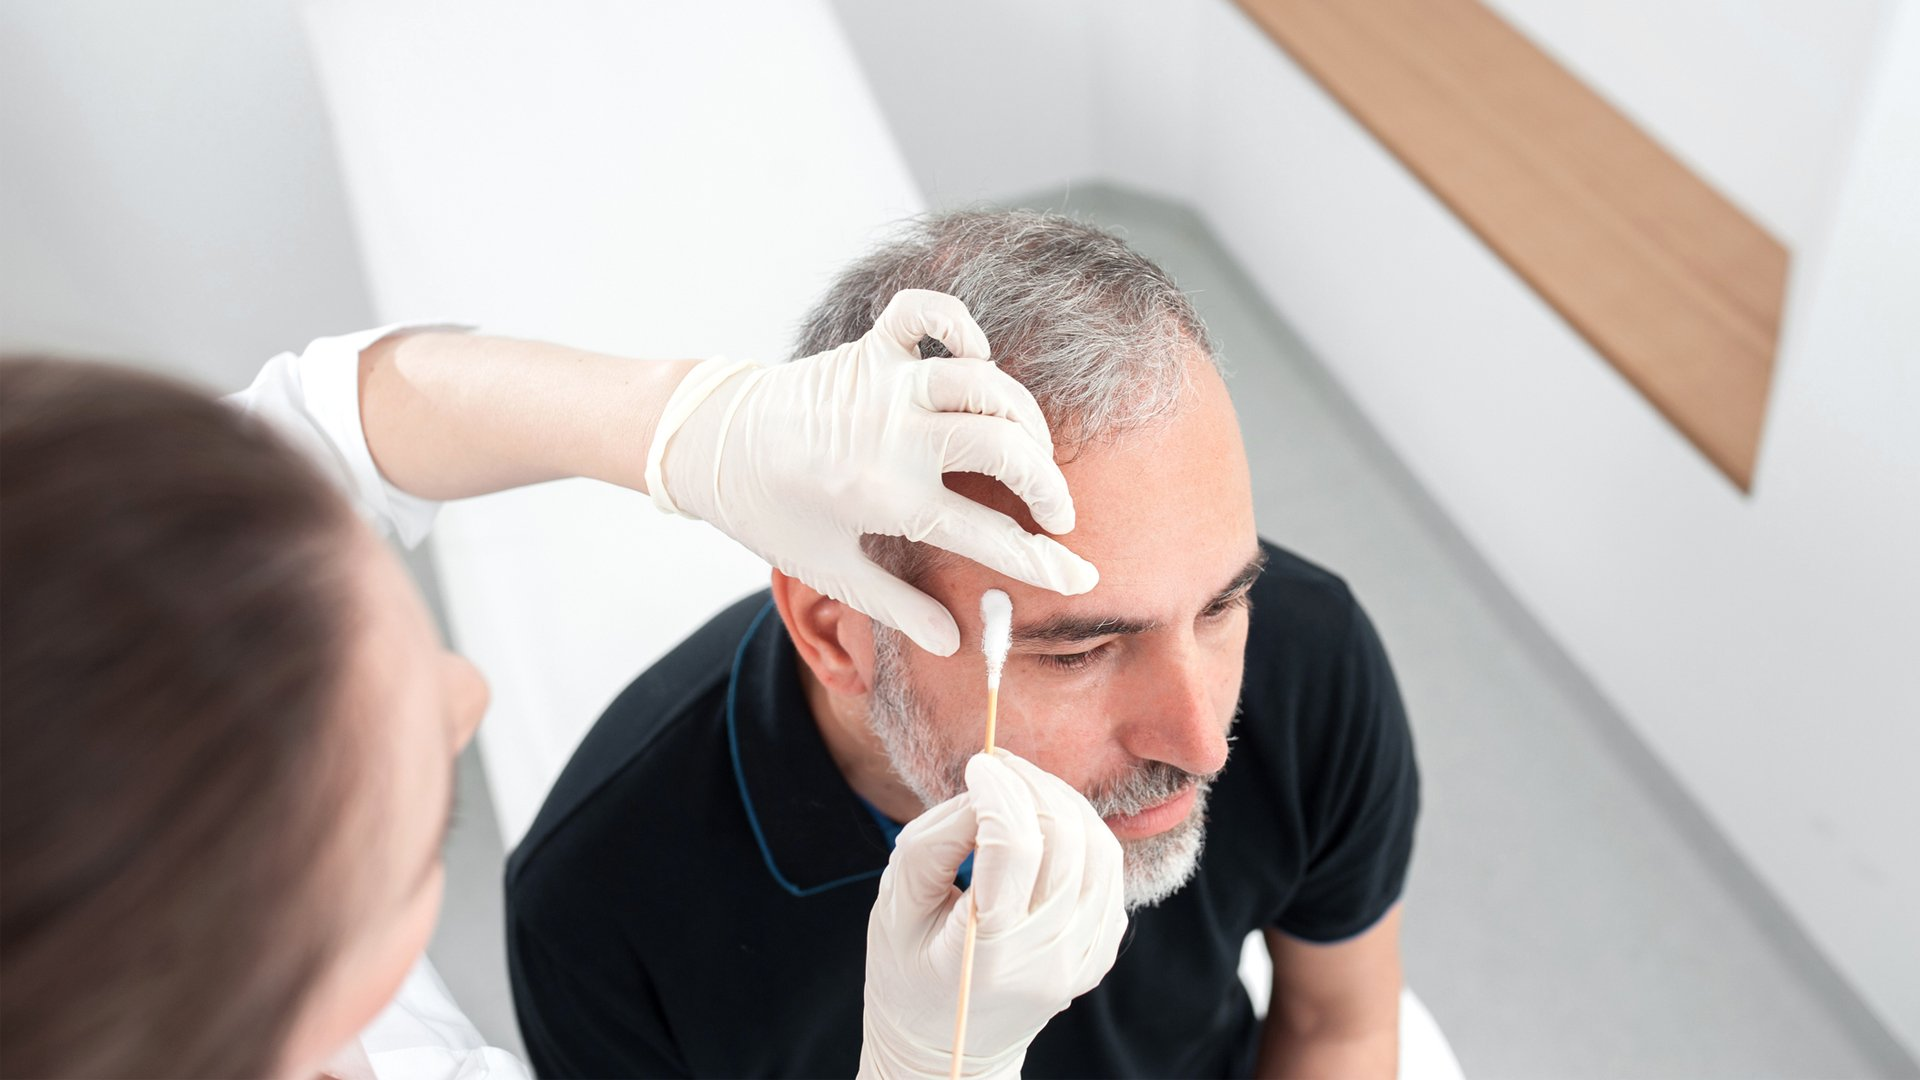 Non-Invasive Skin Swab Samples Are Enough to Quickly Detect COVID-19, a New Study Finds